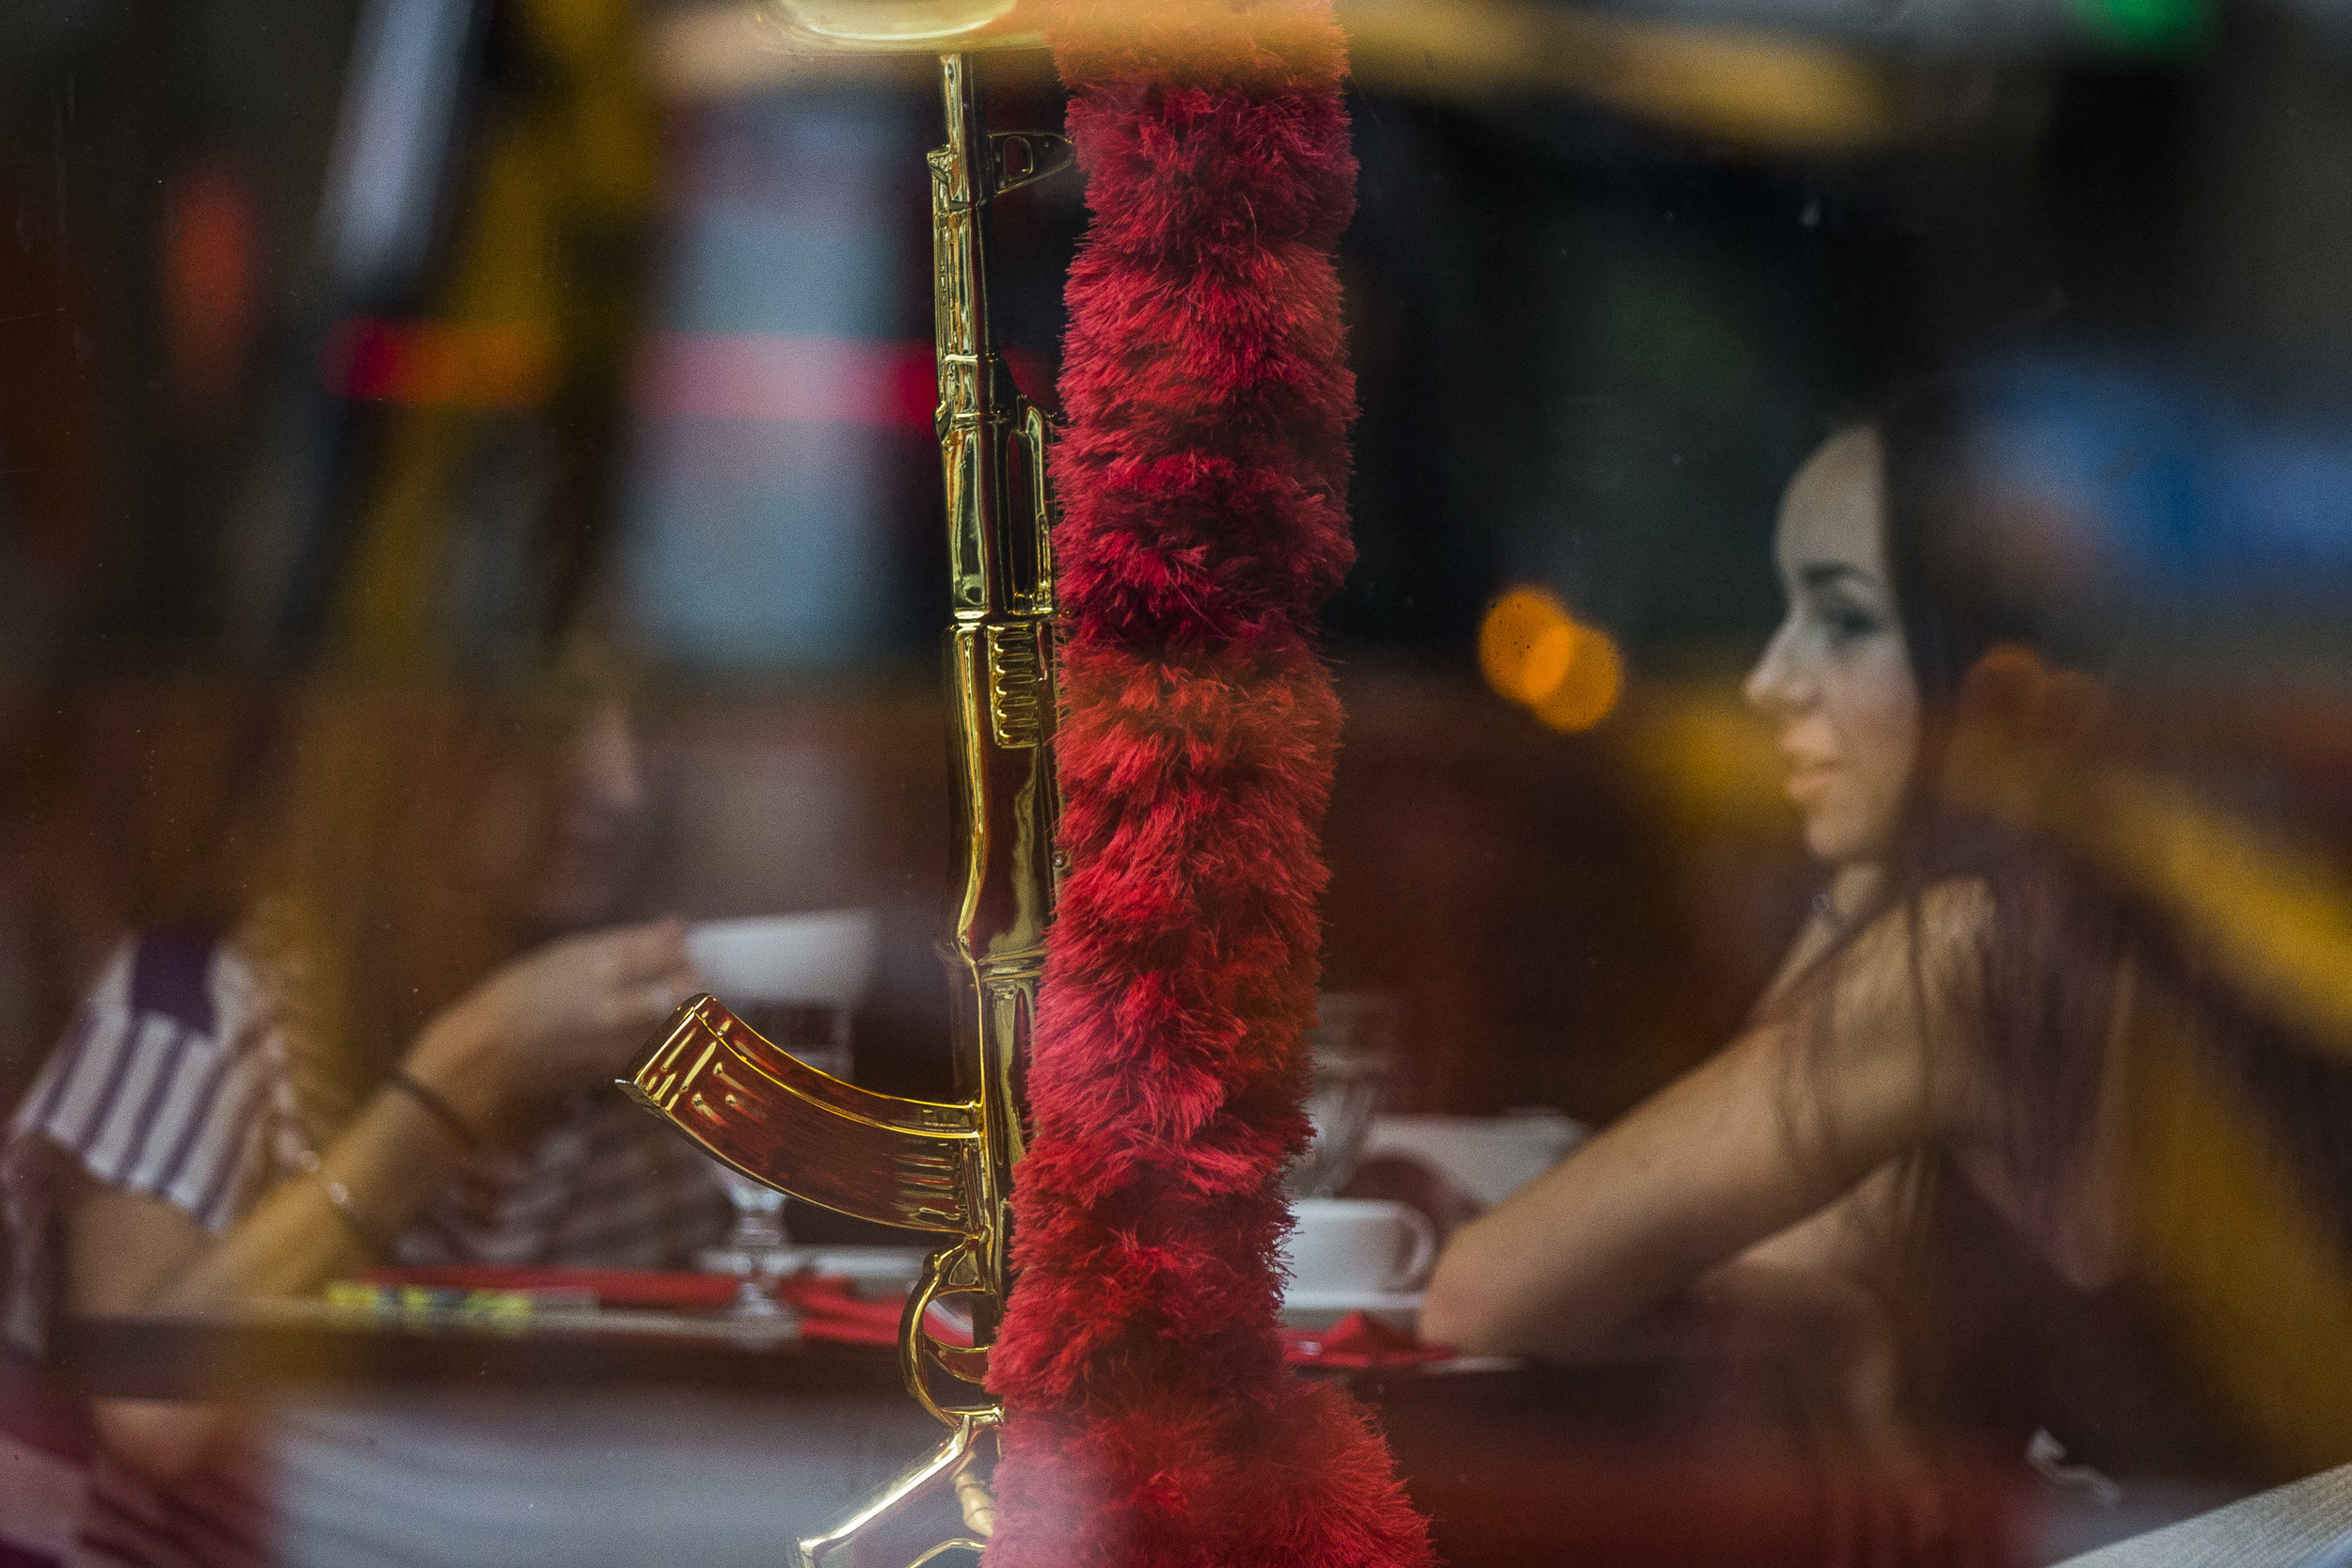 """A golden kalyan in aform of an AK assault rifle that is seen in a window of """"#Sanctions bar"""" in Moscow that was opened after Western countries imposed sanctions against Russia and is using all sorts of patriotic symbols"""